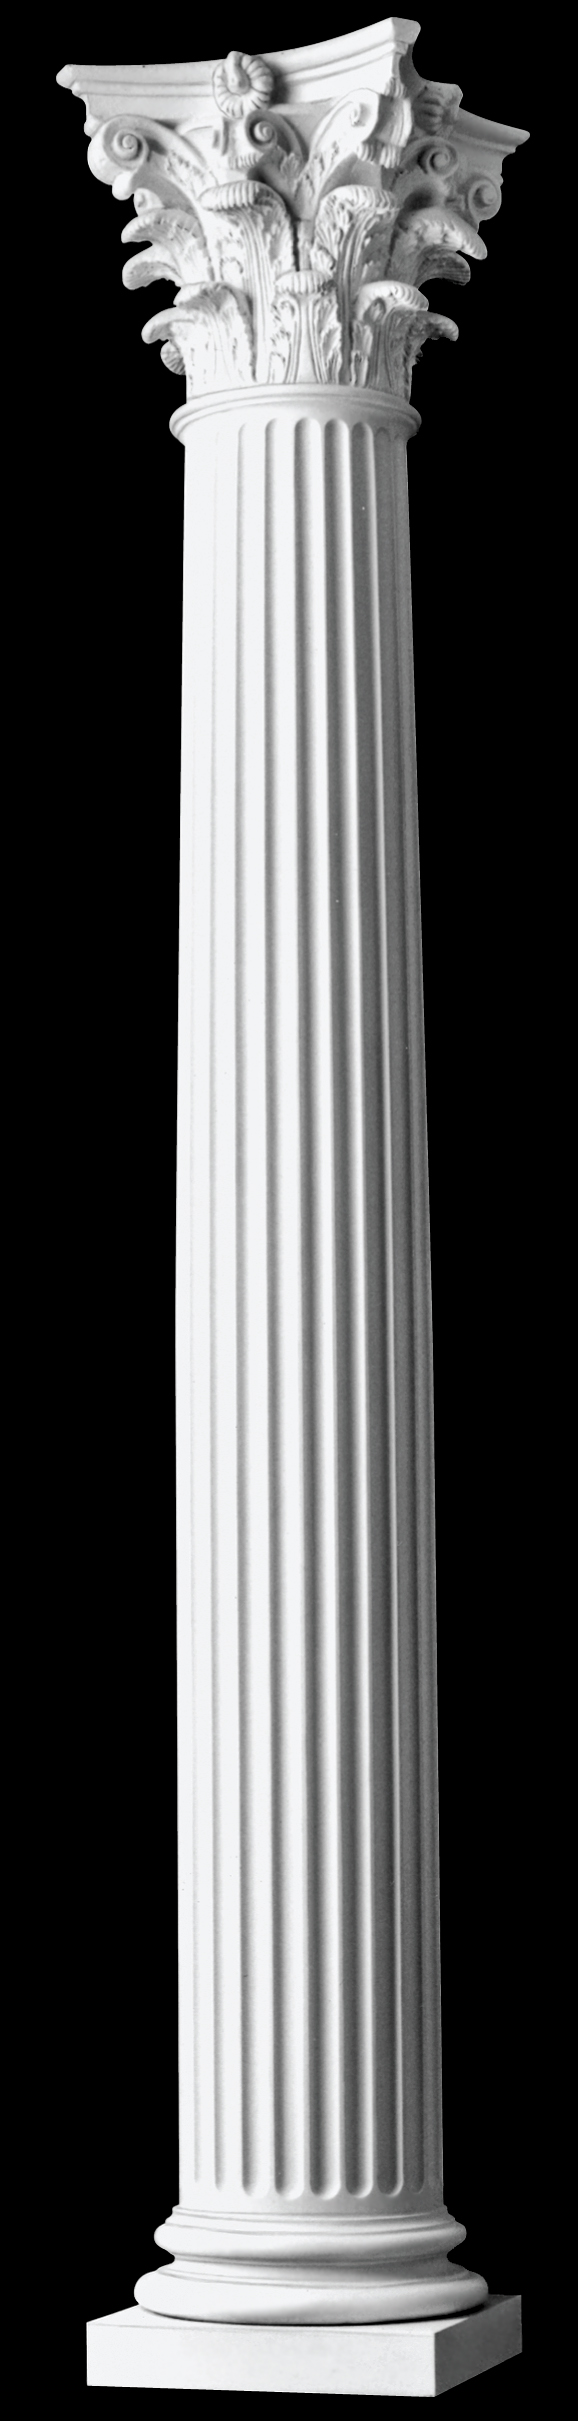 Architectural Column Base : Architectural columns fluted roman corinthian wood